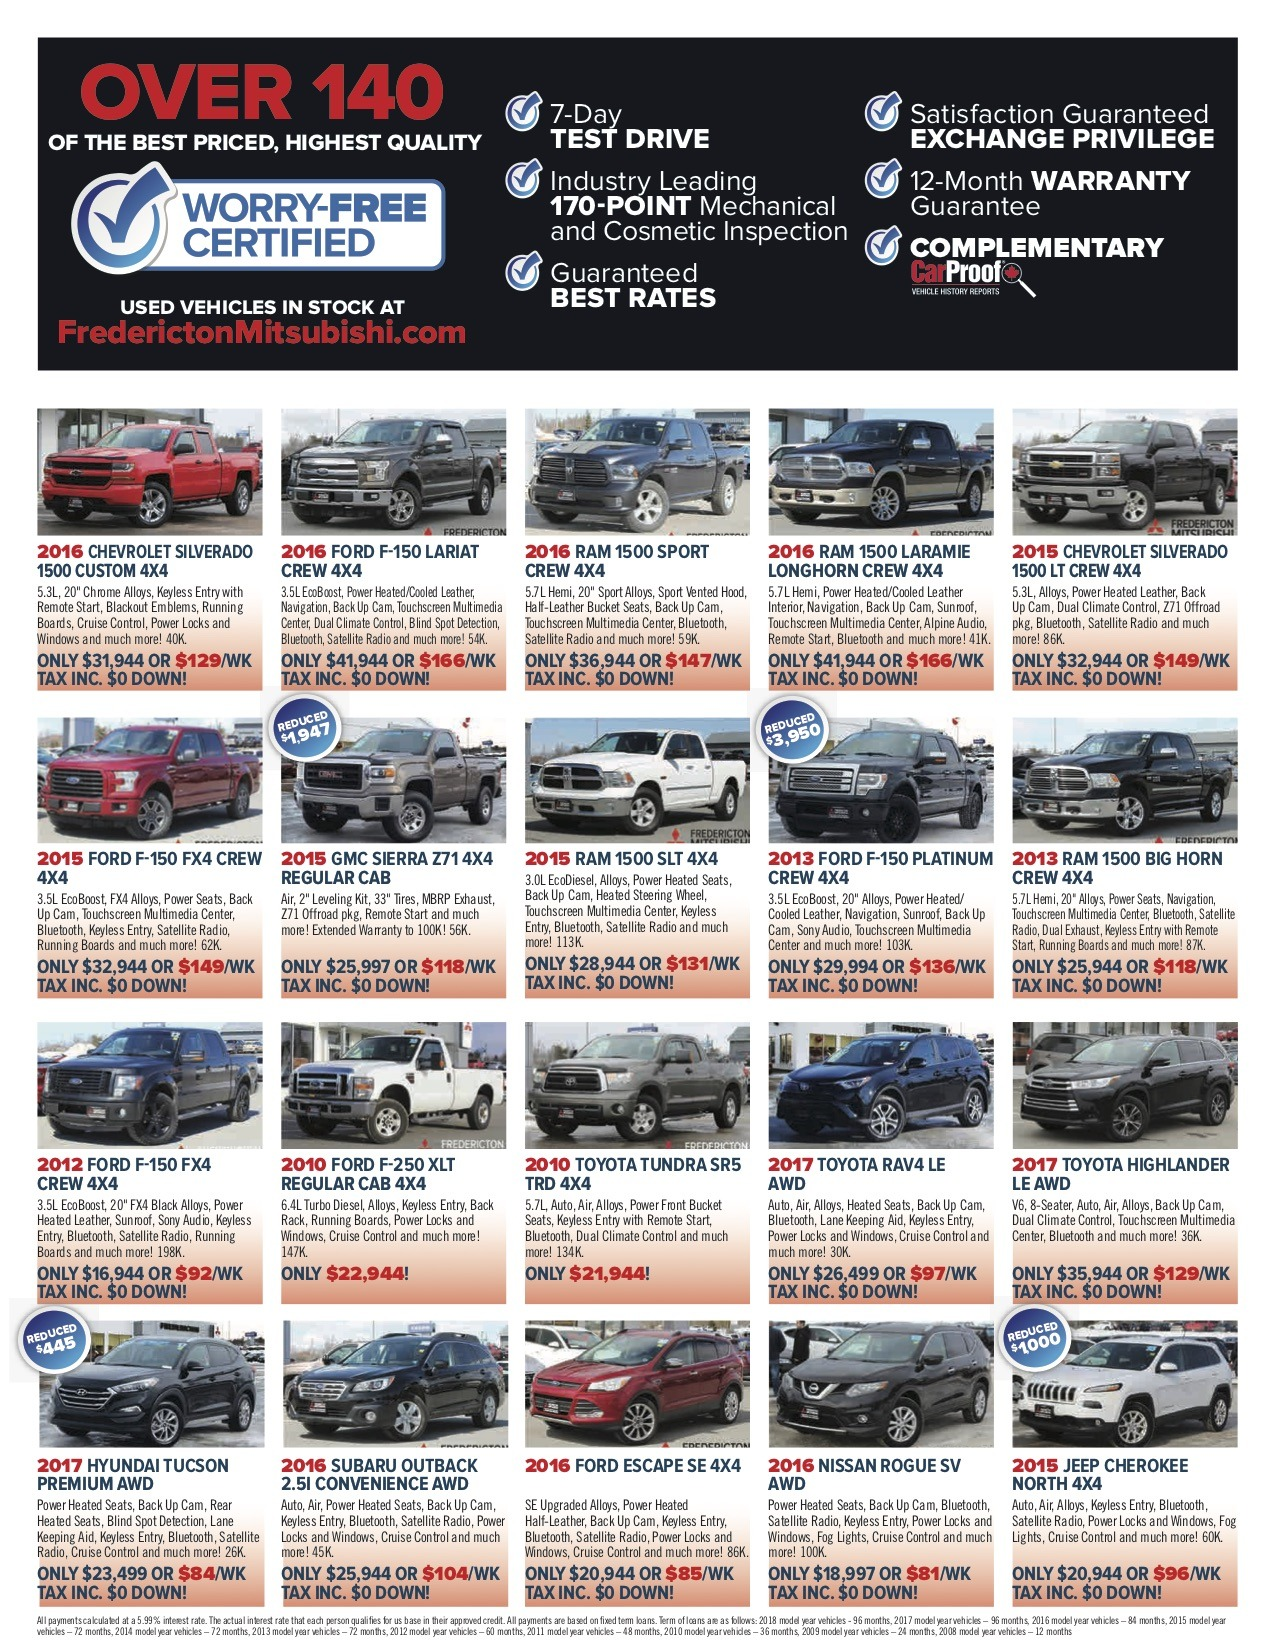 2 Used cars Fredicton Mitsubishi Flyer May18 - Fredericton Mitsubishi